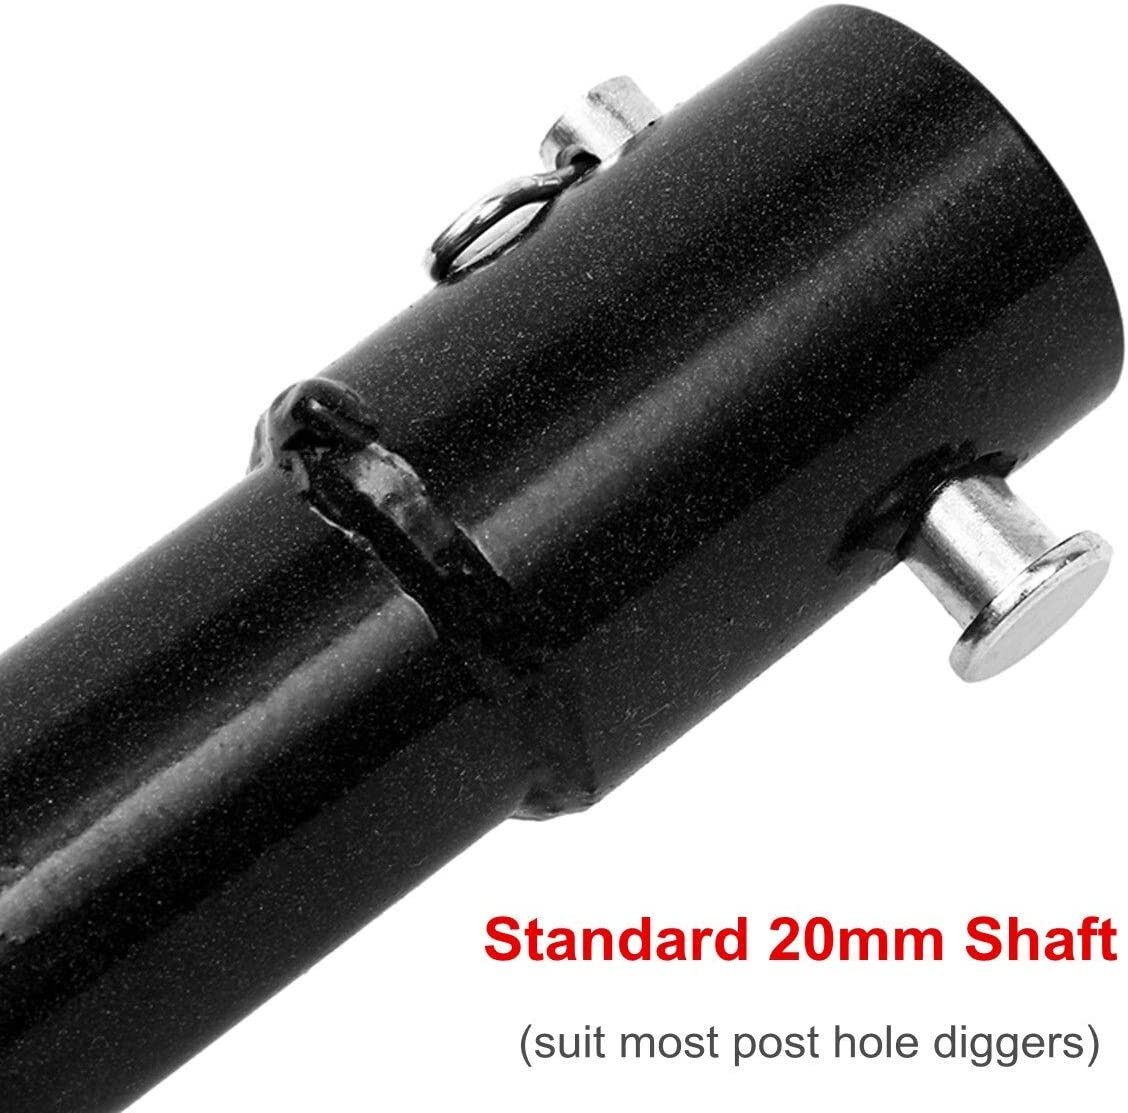 8cm Earth Drill Dual Blade Auger Drill Bit Fence Borer for Earth Petrol Post Hole Digger Power Tool Accessories Auger Drill Bit (Color : 80mm) 80mm